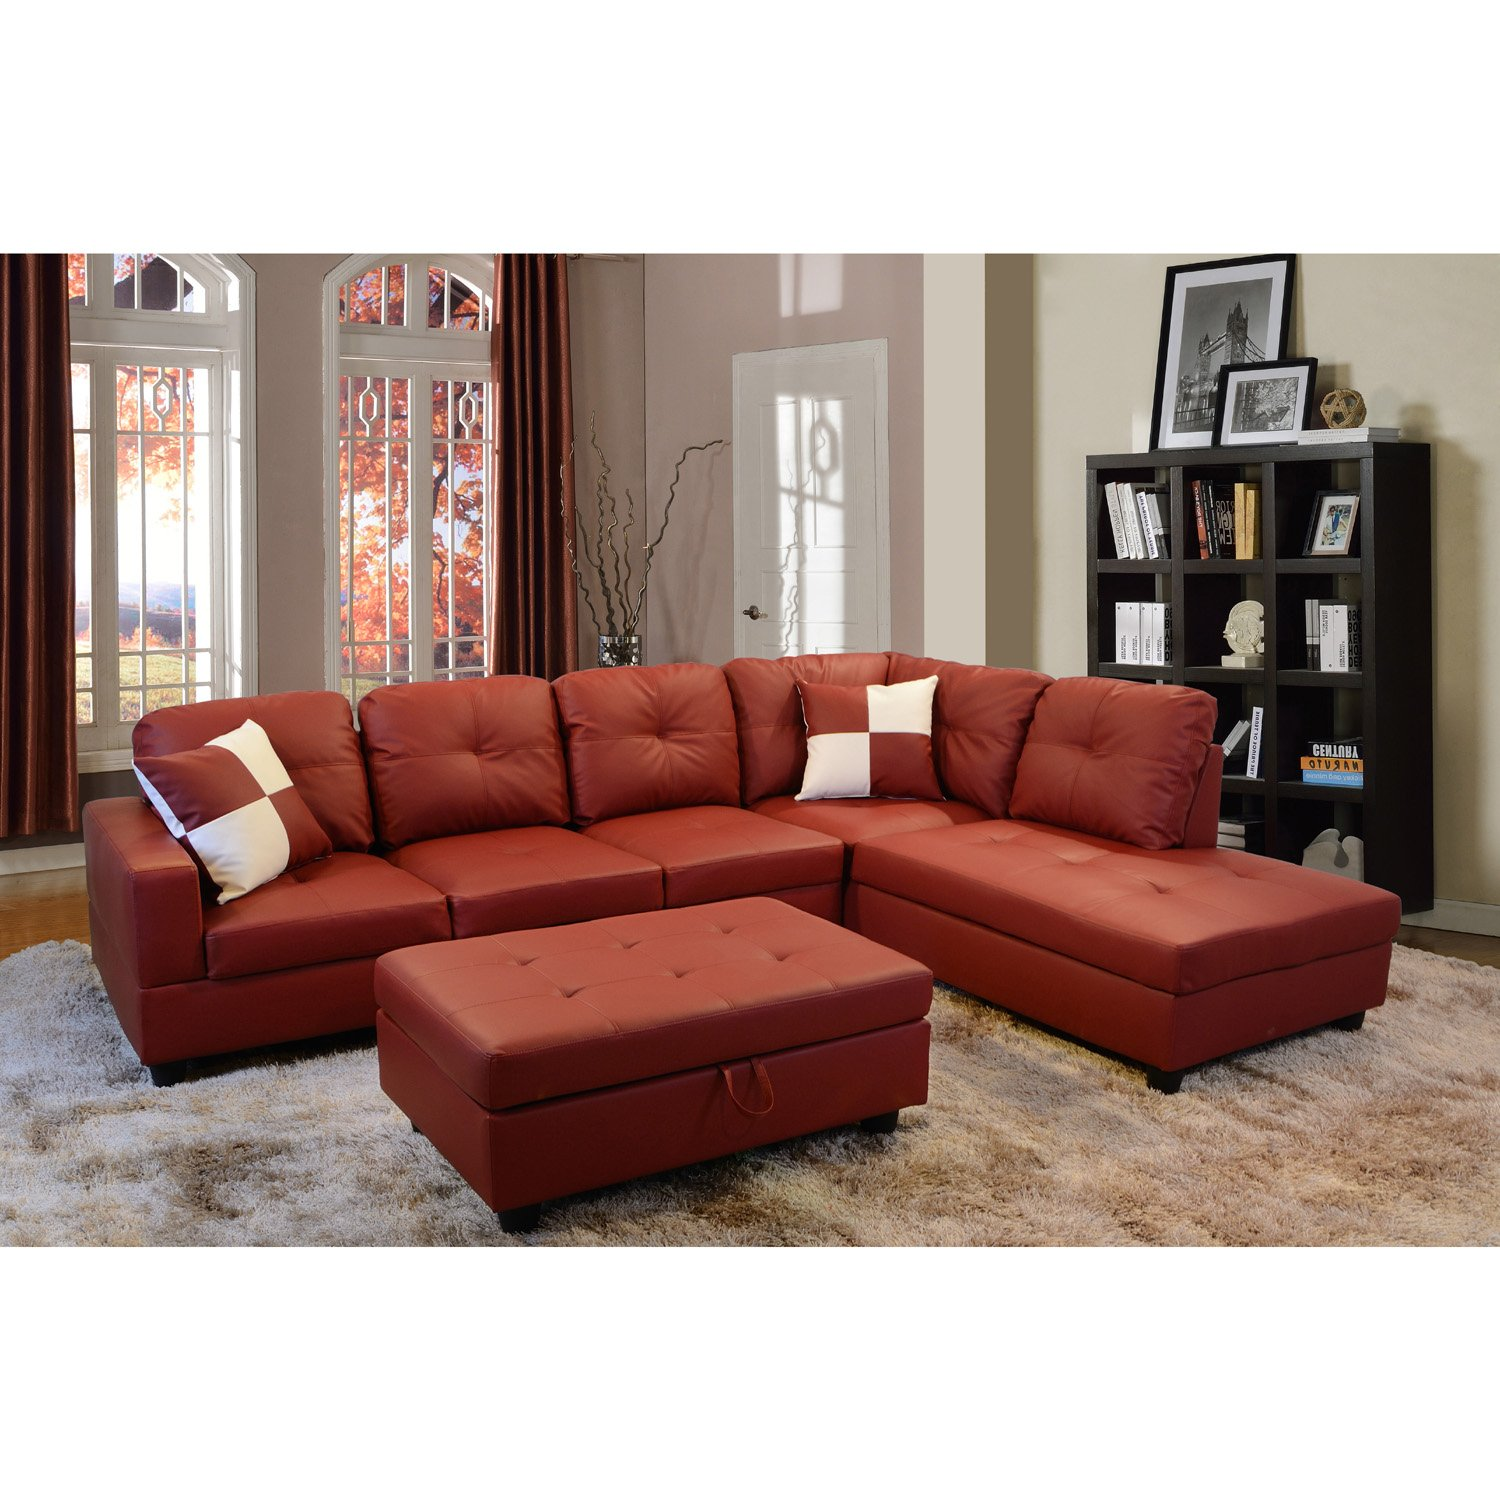 Buy 3 Pcs Sectional Set Faux Leather Caramel Espresso Color